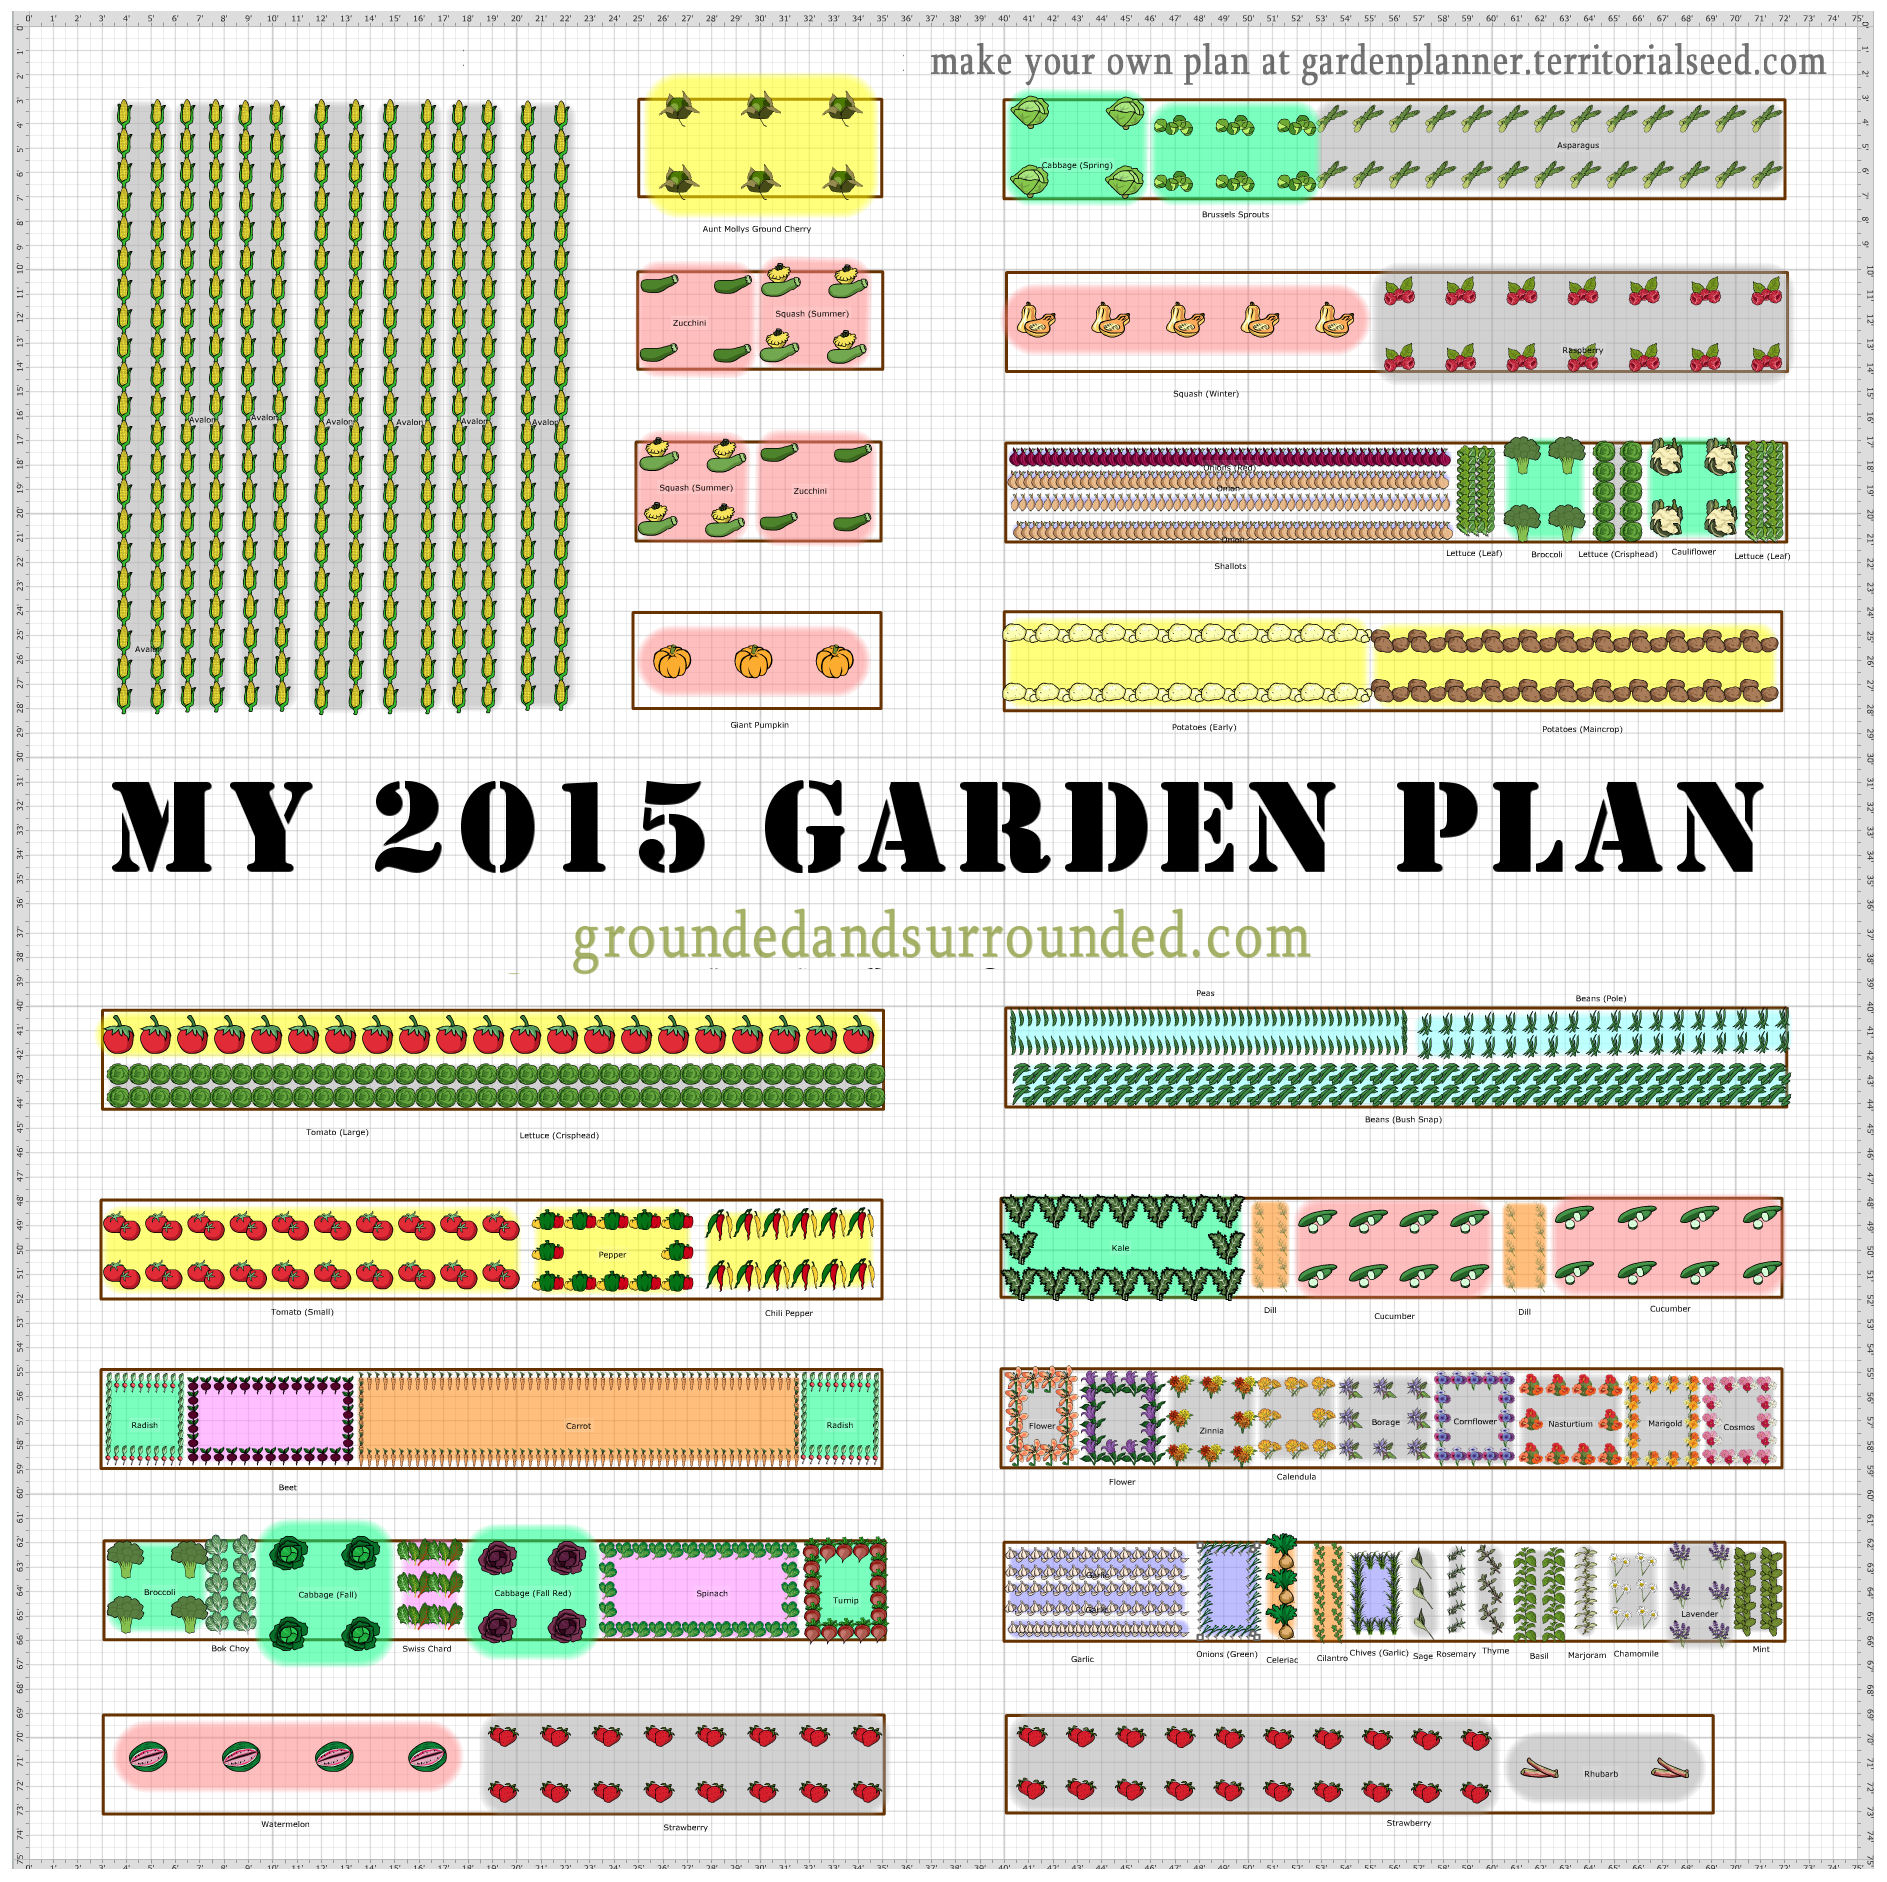 My 5 000 sq ft vegetable garden plan grounded surrounded for Vegetable garden box layout